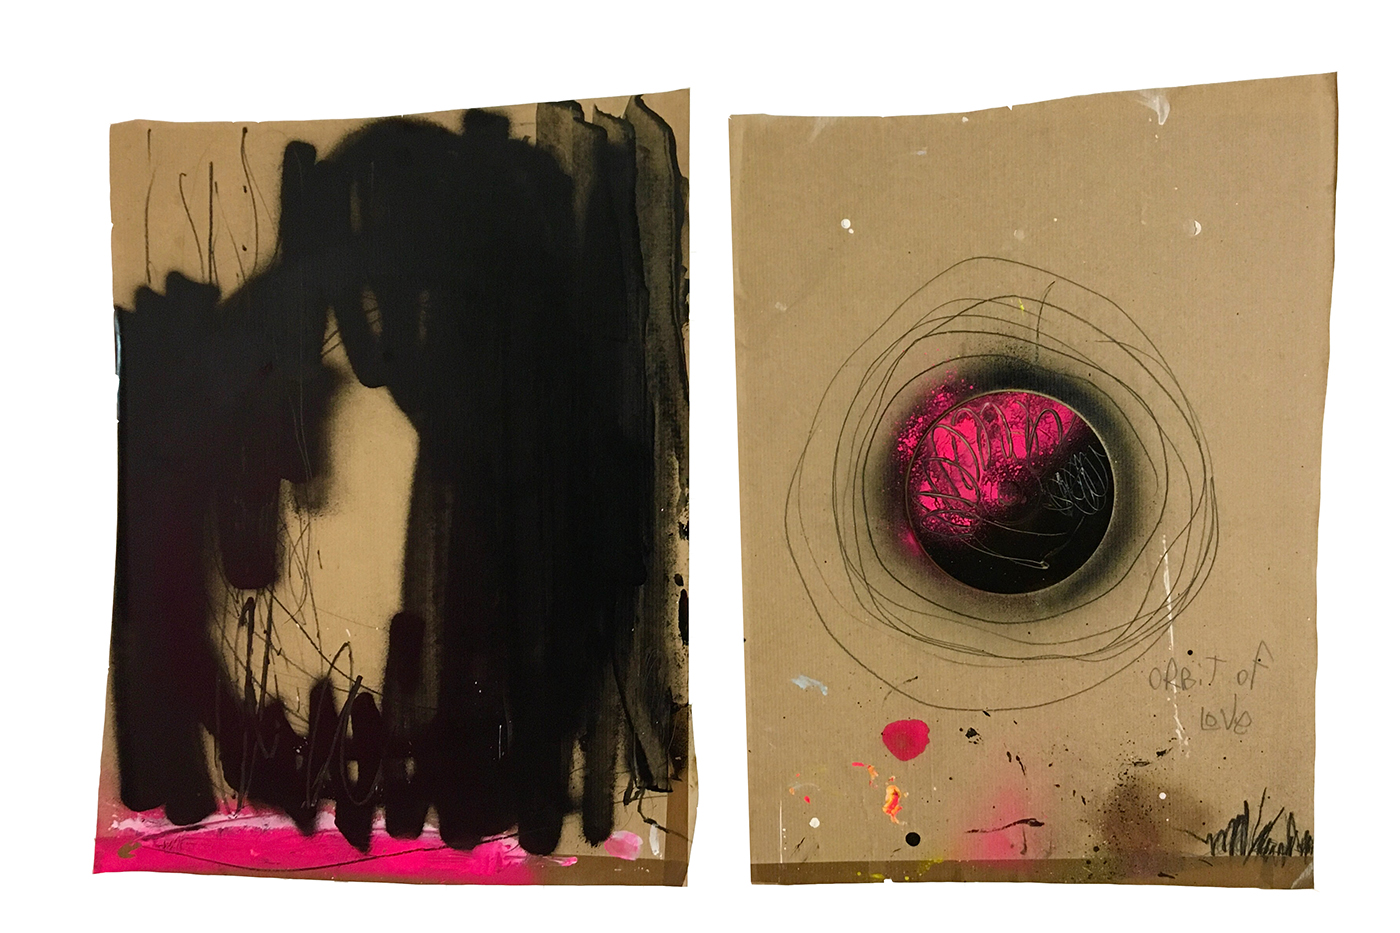 orbit of love pink black mixed media abstract artwork assemblage Petronilla Hohenwarter the circle